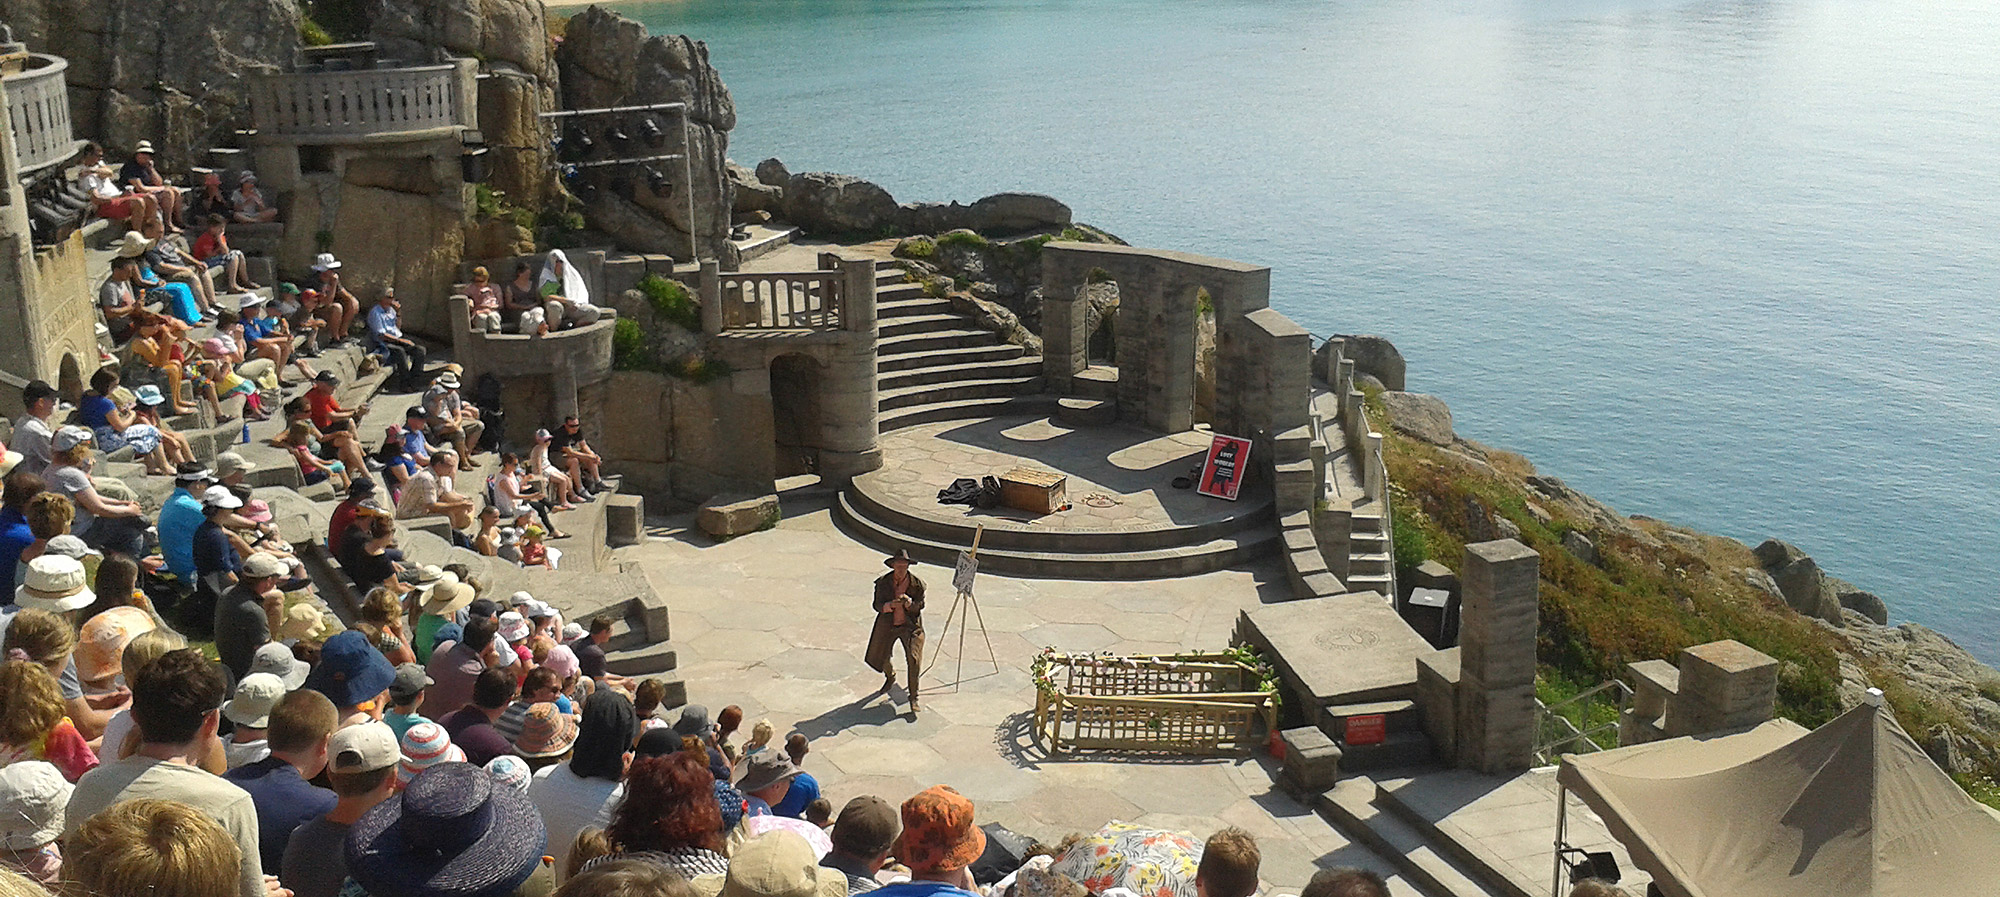 Catch a play at the open air Minack Theatre in Porthcurno